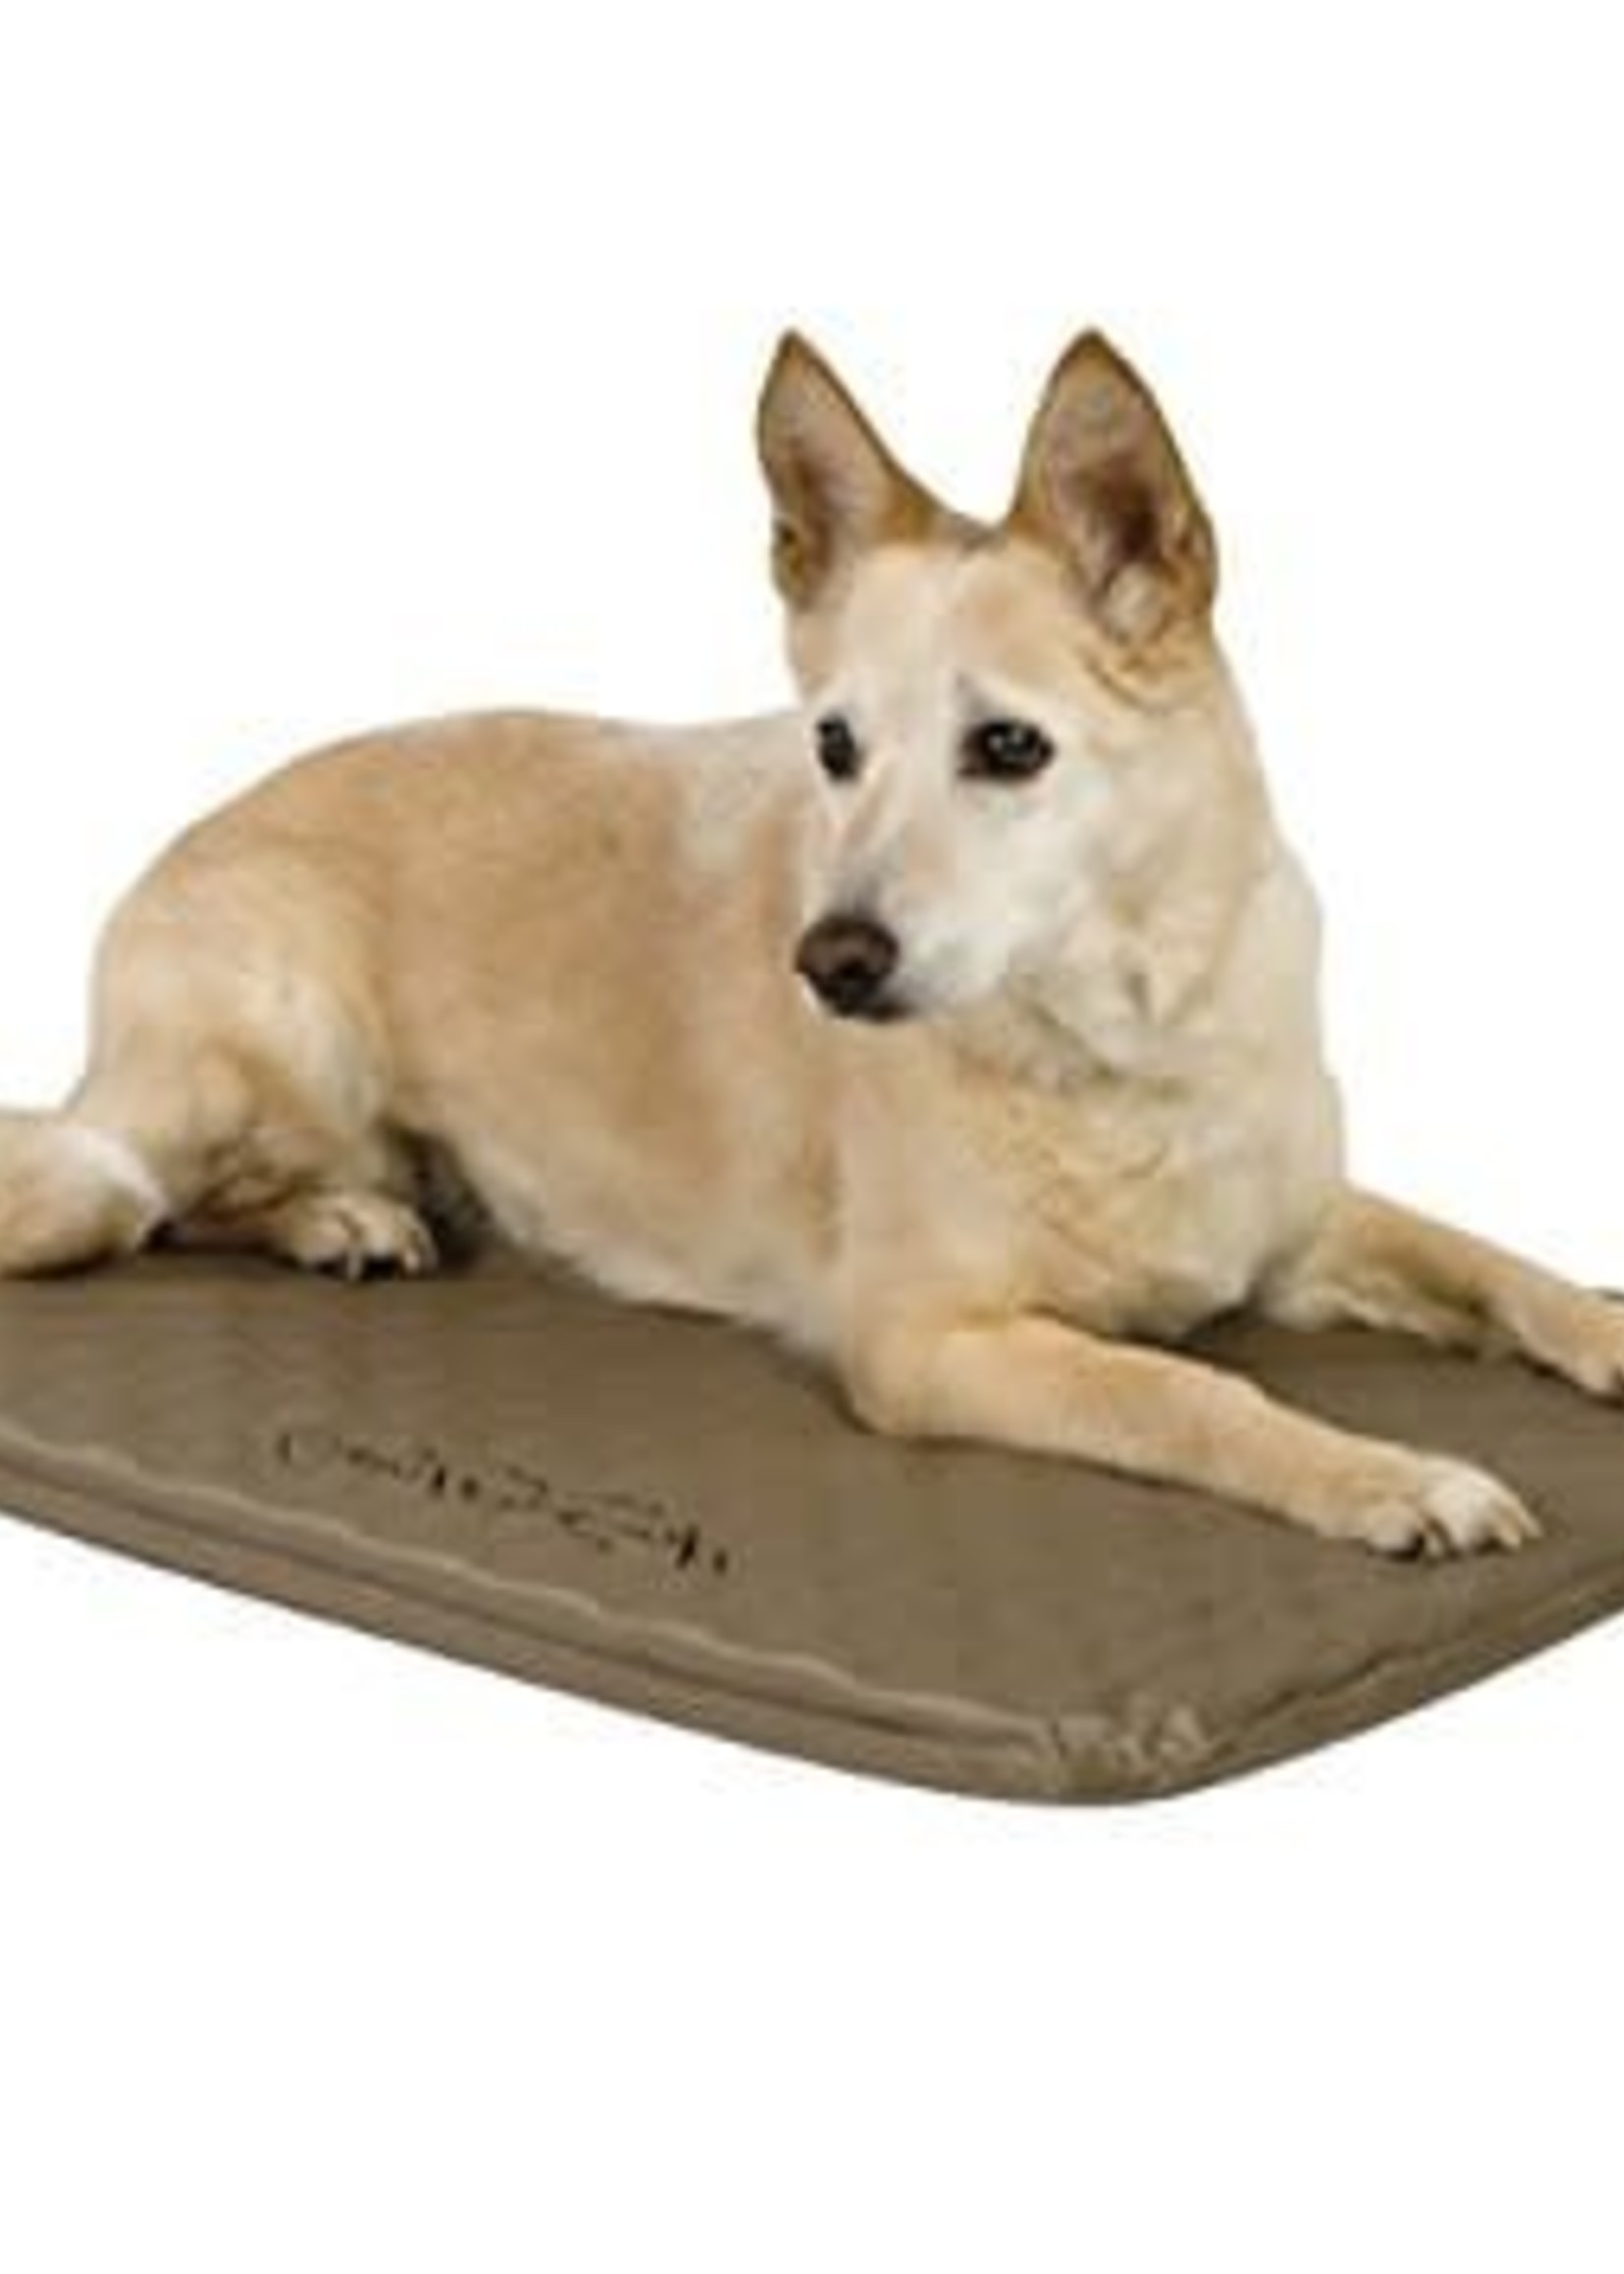 K&H Pet Lectro Soft Outdoor Heated Bed Brn19x24